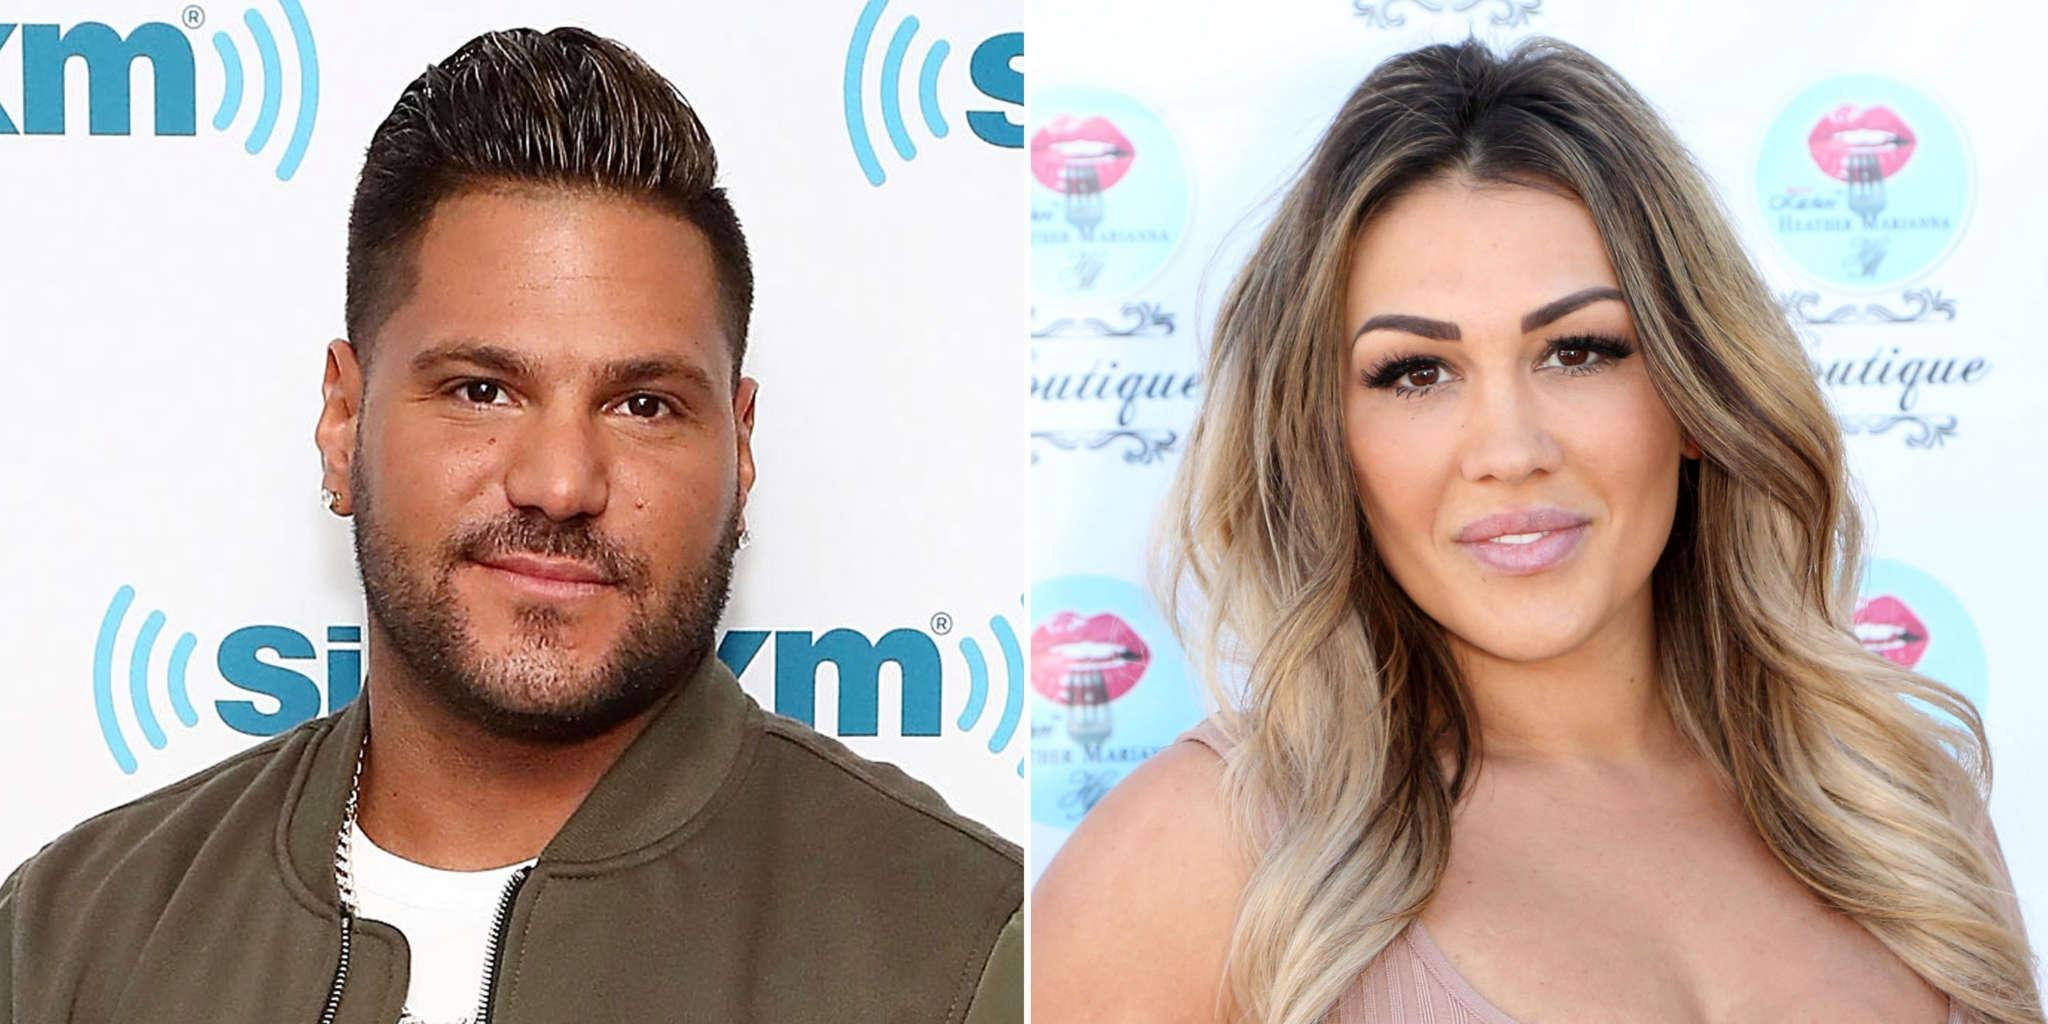 Jen Harley Seemed 'Unhappy' While At A Bash With Ronnie Ortiz-Magro Prior To His Arrest, Eyewitness Says